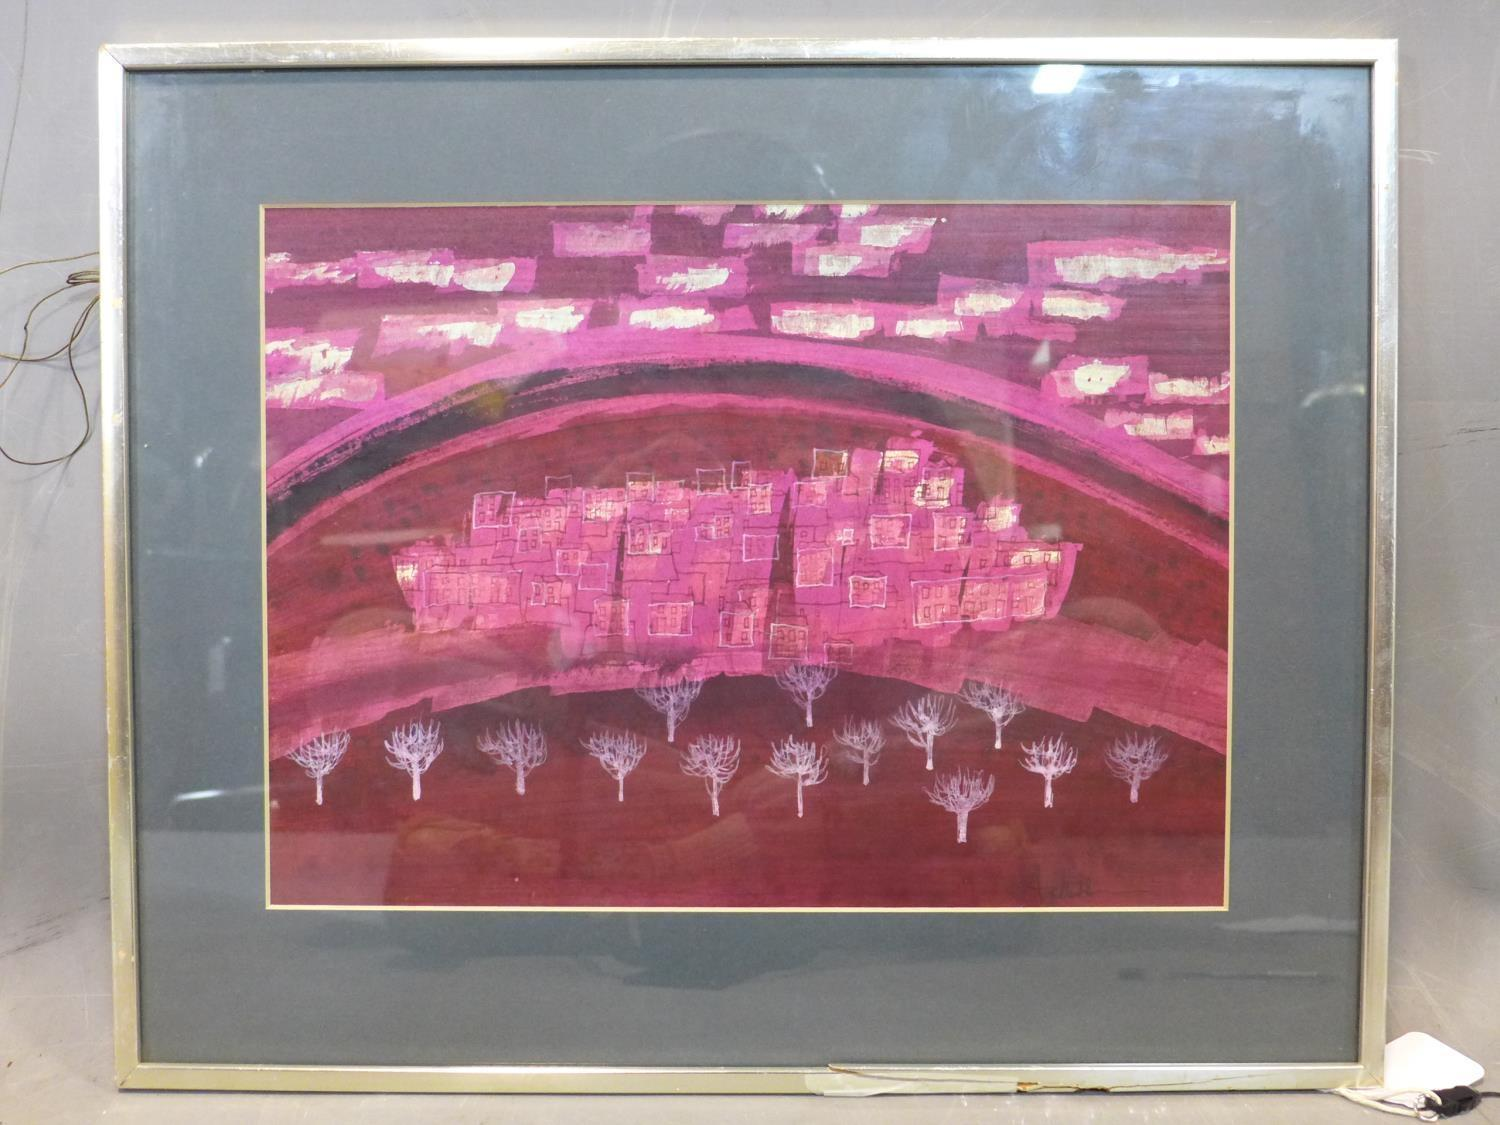 Lot 301 - Talbot Hicks, abstract painting of a town with trees to foreground, in deep pinks, paler pinks and